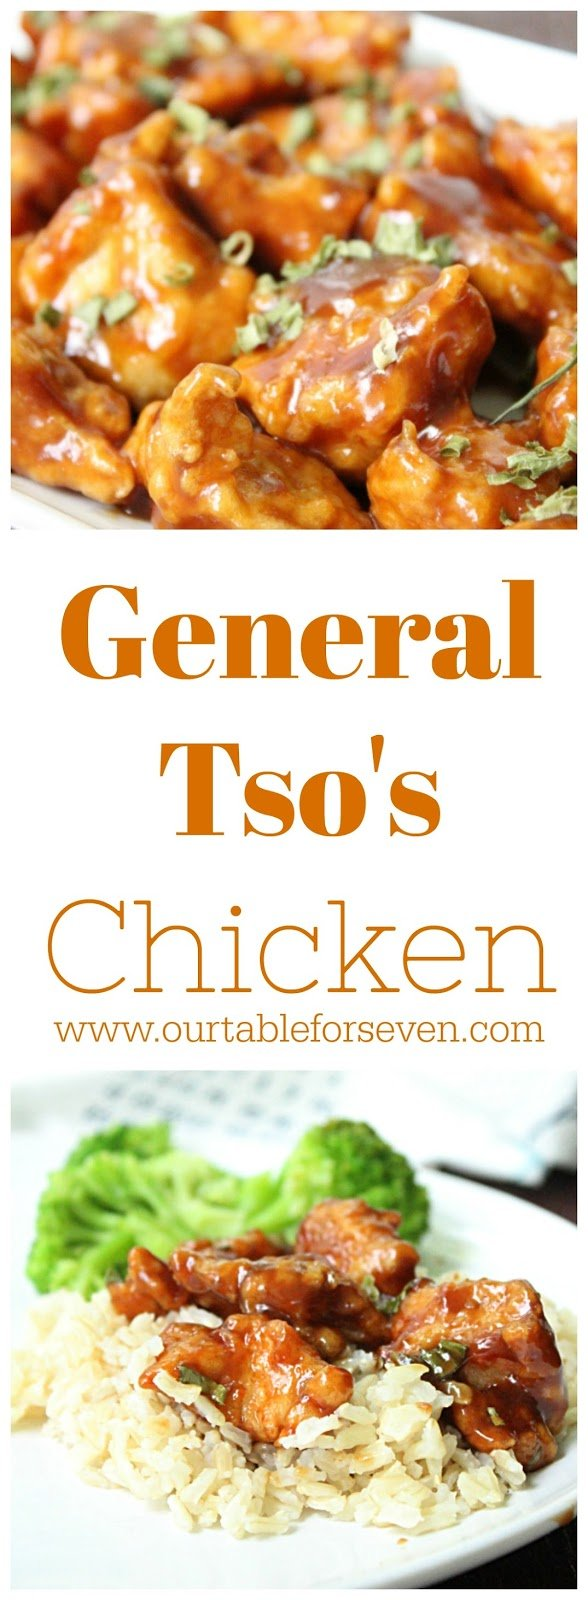 General Tso's Chicken from Table for Seven